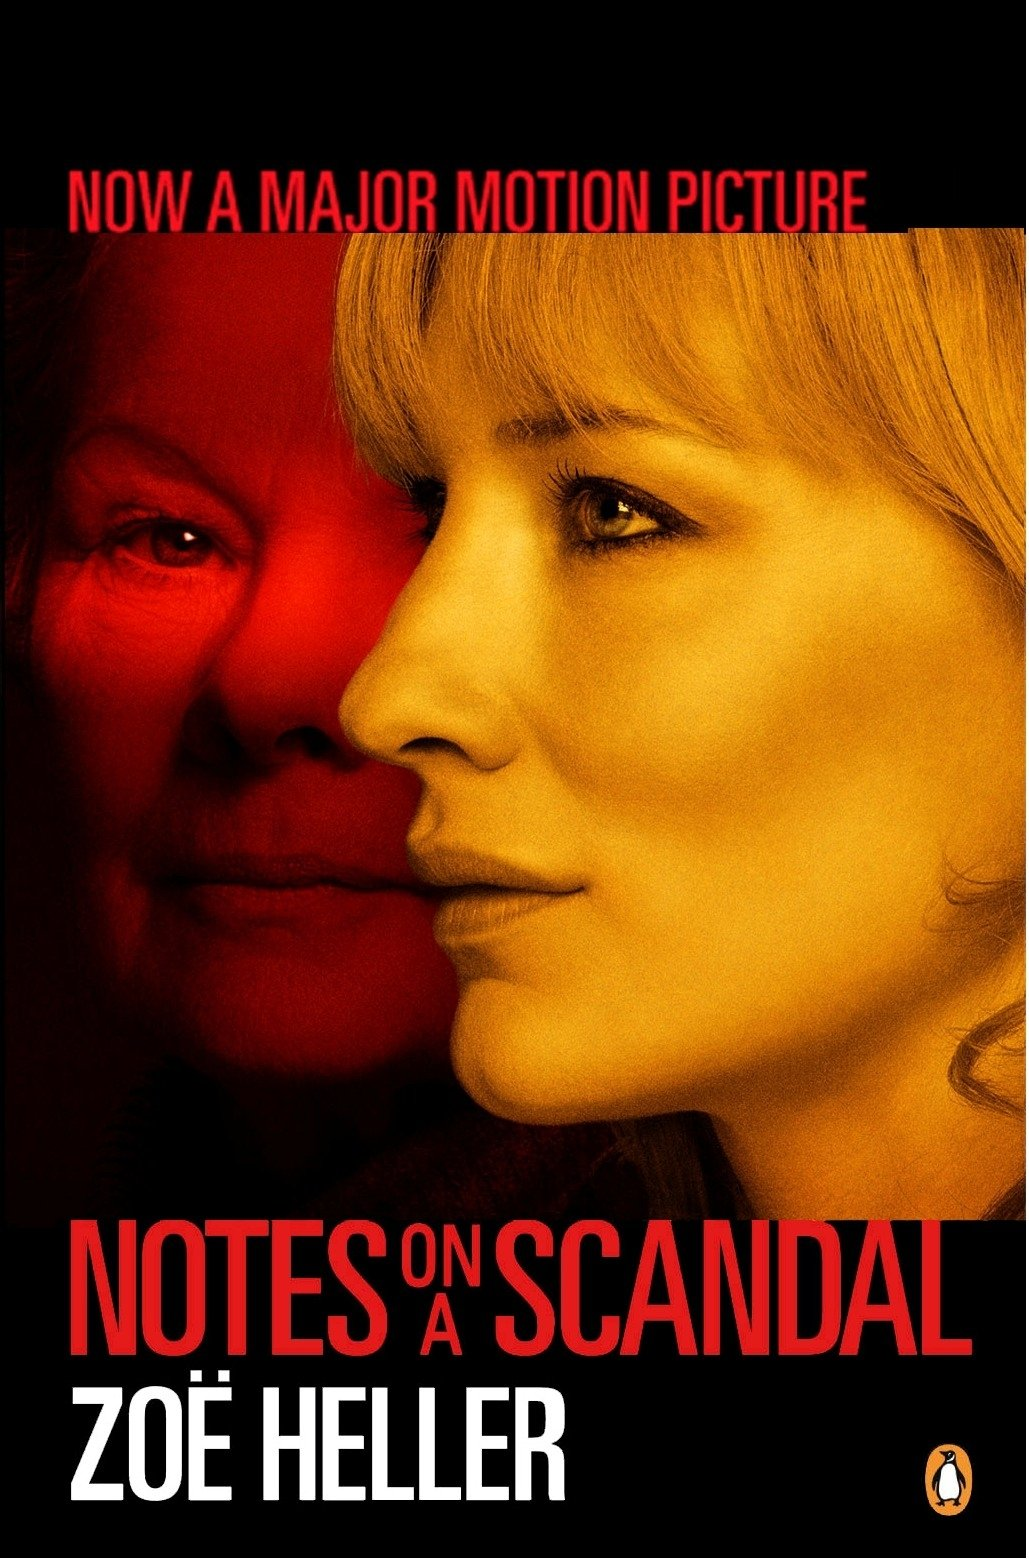 Notes on a scandal zoe heller 9780141029061 amazon books fandeluxe Choice Image